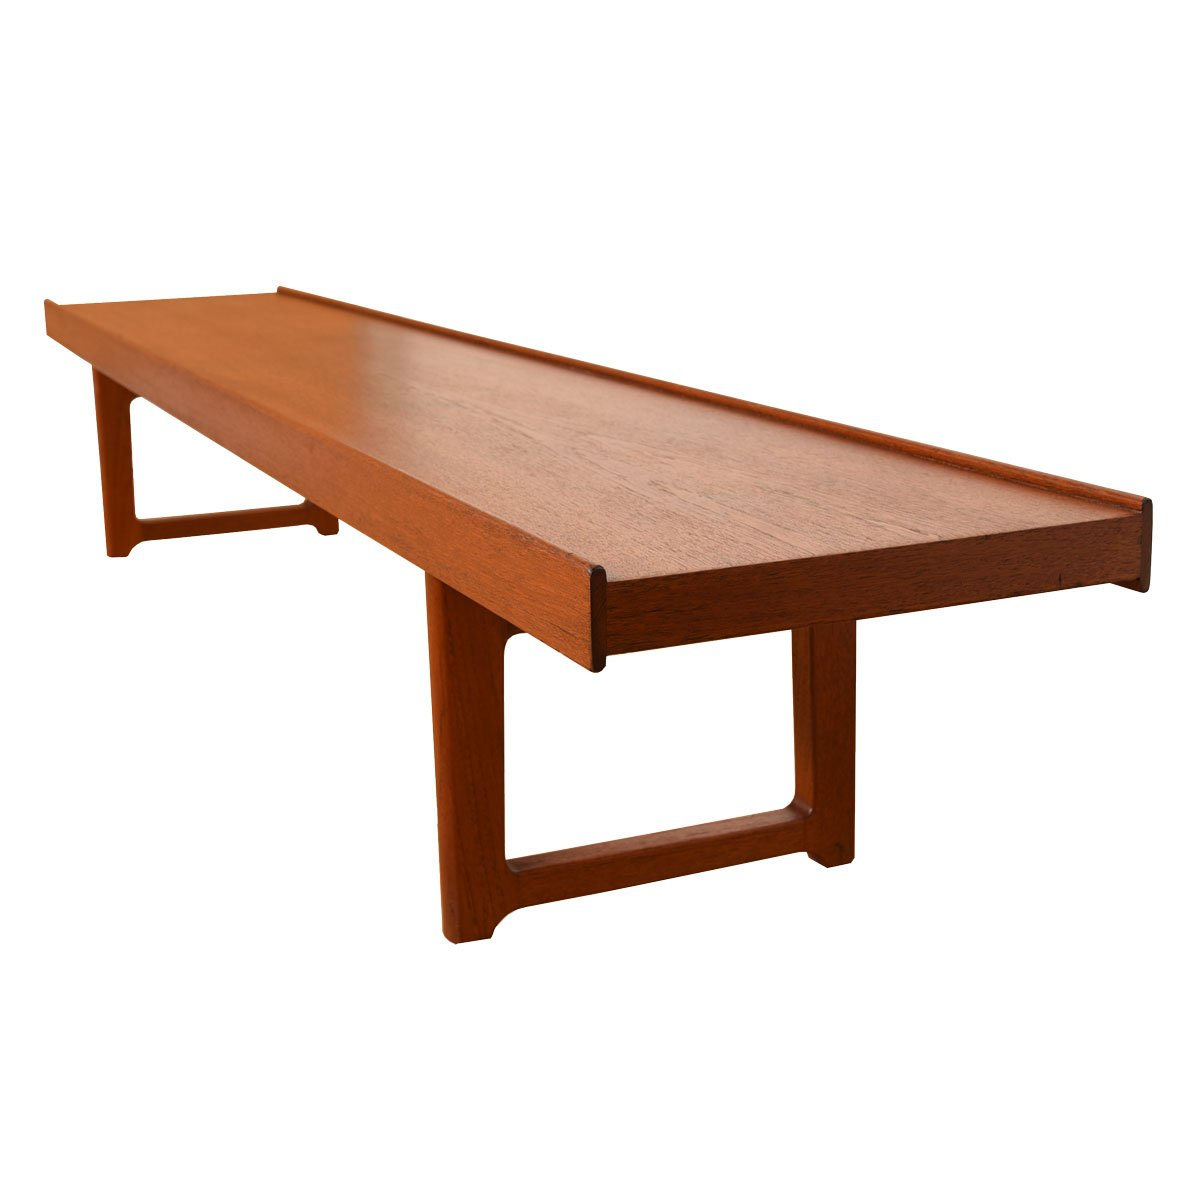 Danish Modern Teak Torbjorn Afdal Bruksbo Long Bench / Coffee Table